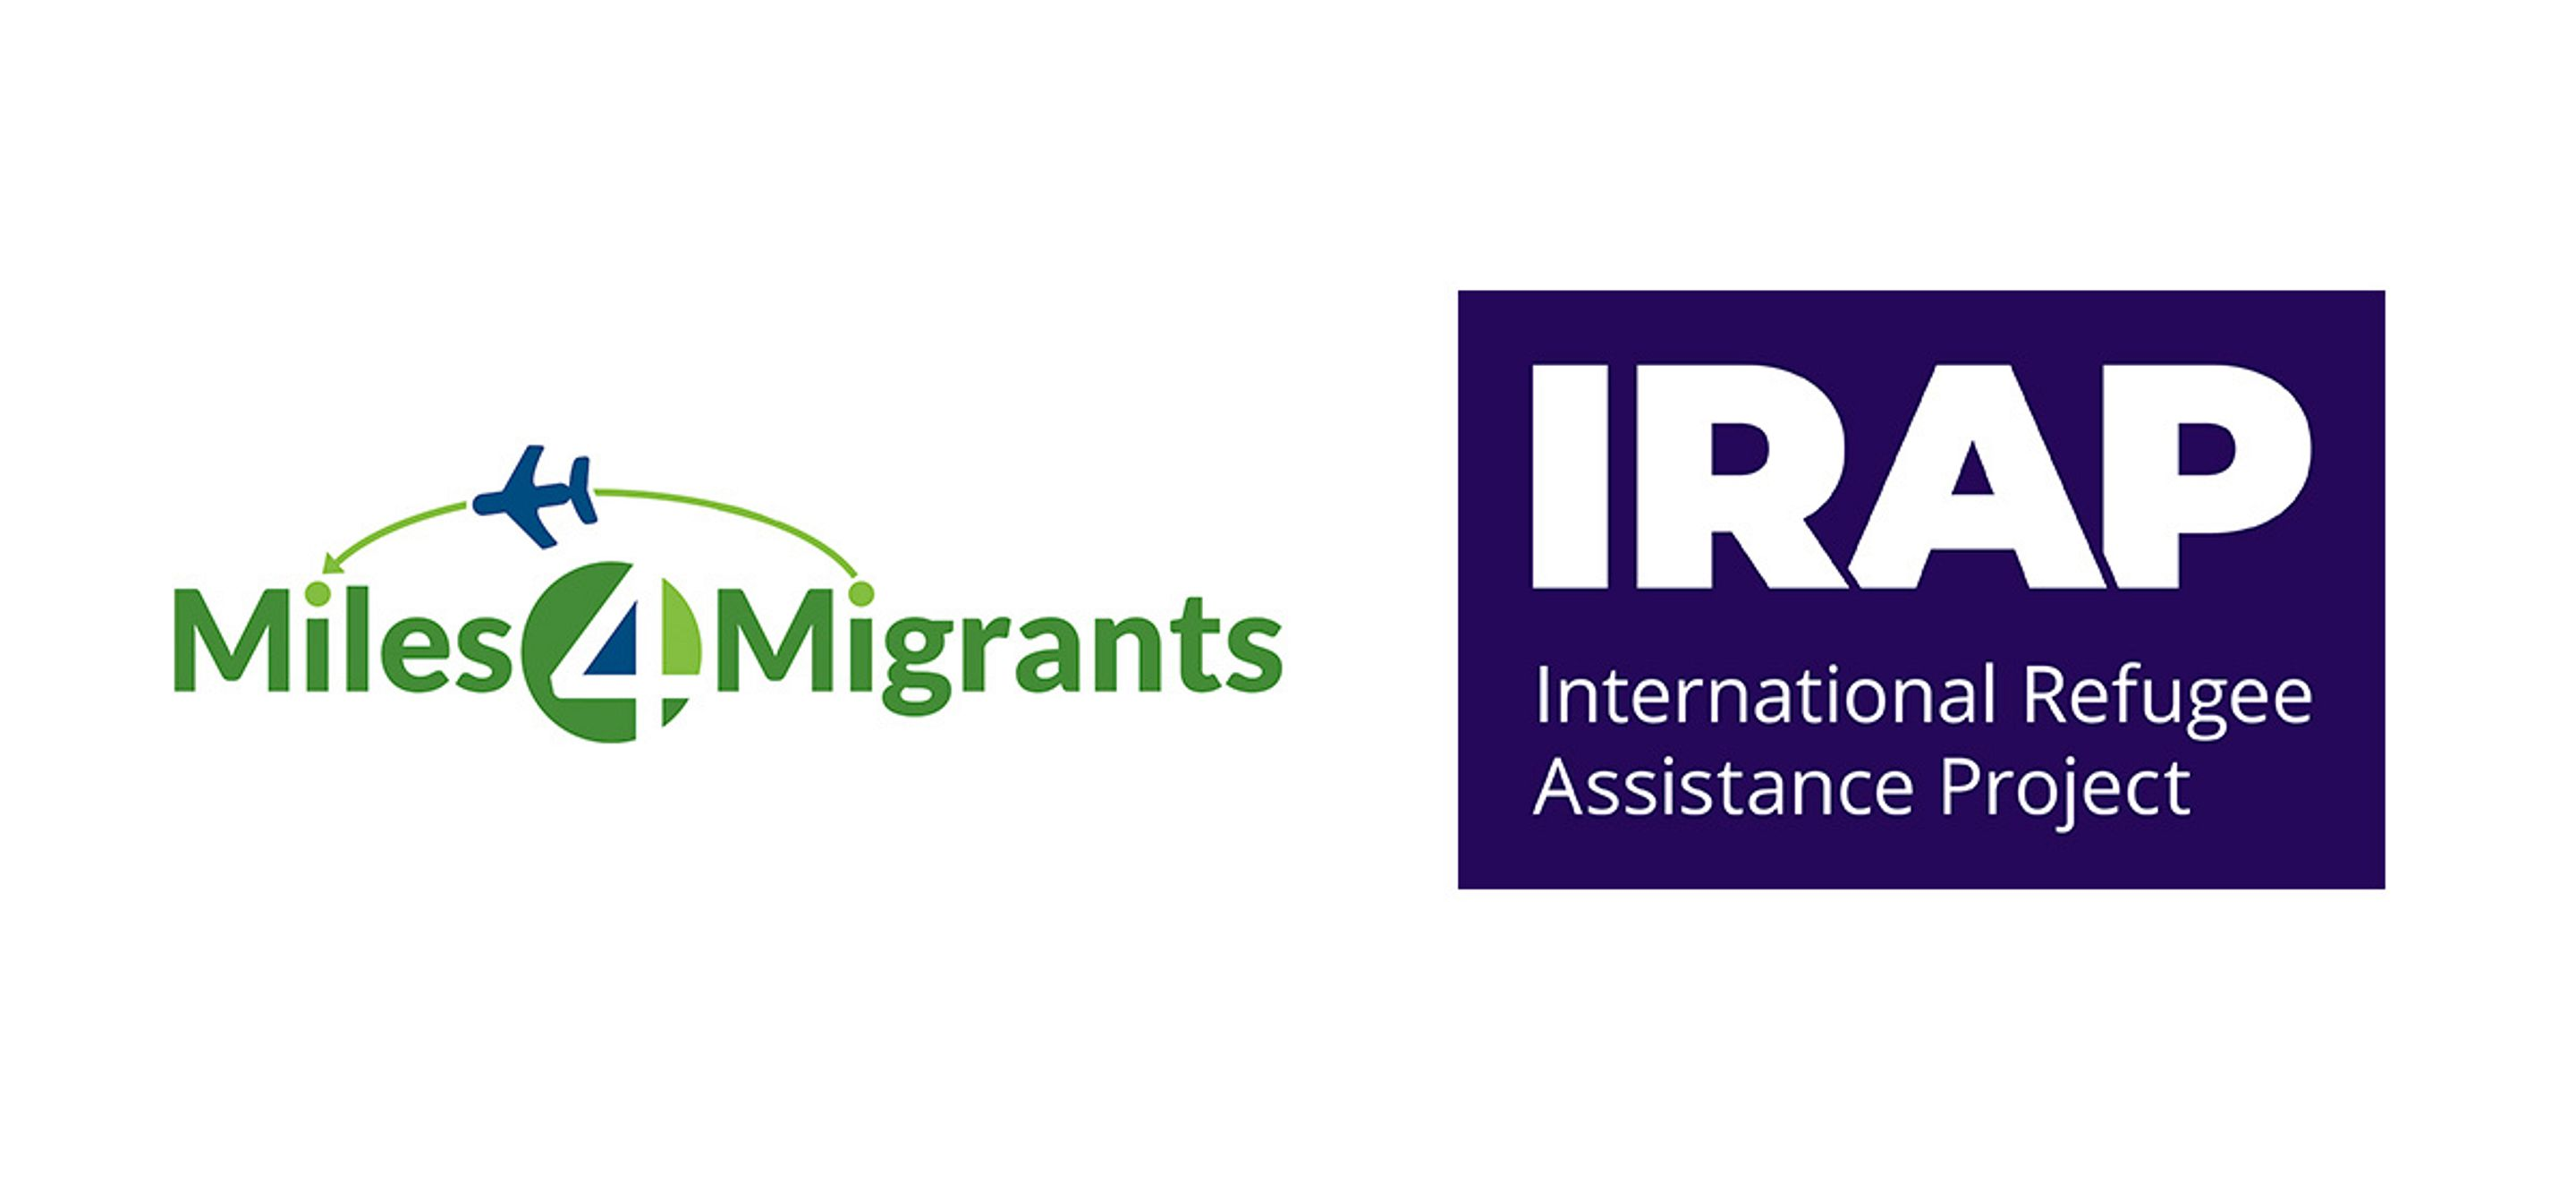 """Dual horizontal logo of Miles4Migrants and IRAP logos. On the left is the Miles4Migrants logo, in two shades of green and a bright, bold blue. A blue airplane transits a light green flight path between the dot of the """"i"""" in Migrants and the dot of the """"i"""" in Miles. The internal triangle of the 4 in the middle of the logo is filled in in blue. To the right is the IRAP logo with the acronym IRAP in bold white Open Sans font stacked on top of the full organization name. """"International Refugee"""" and """"Assistance Project"""" are split across two lines and stacked. The white text is set against a purple background."""